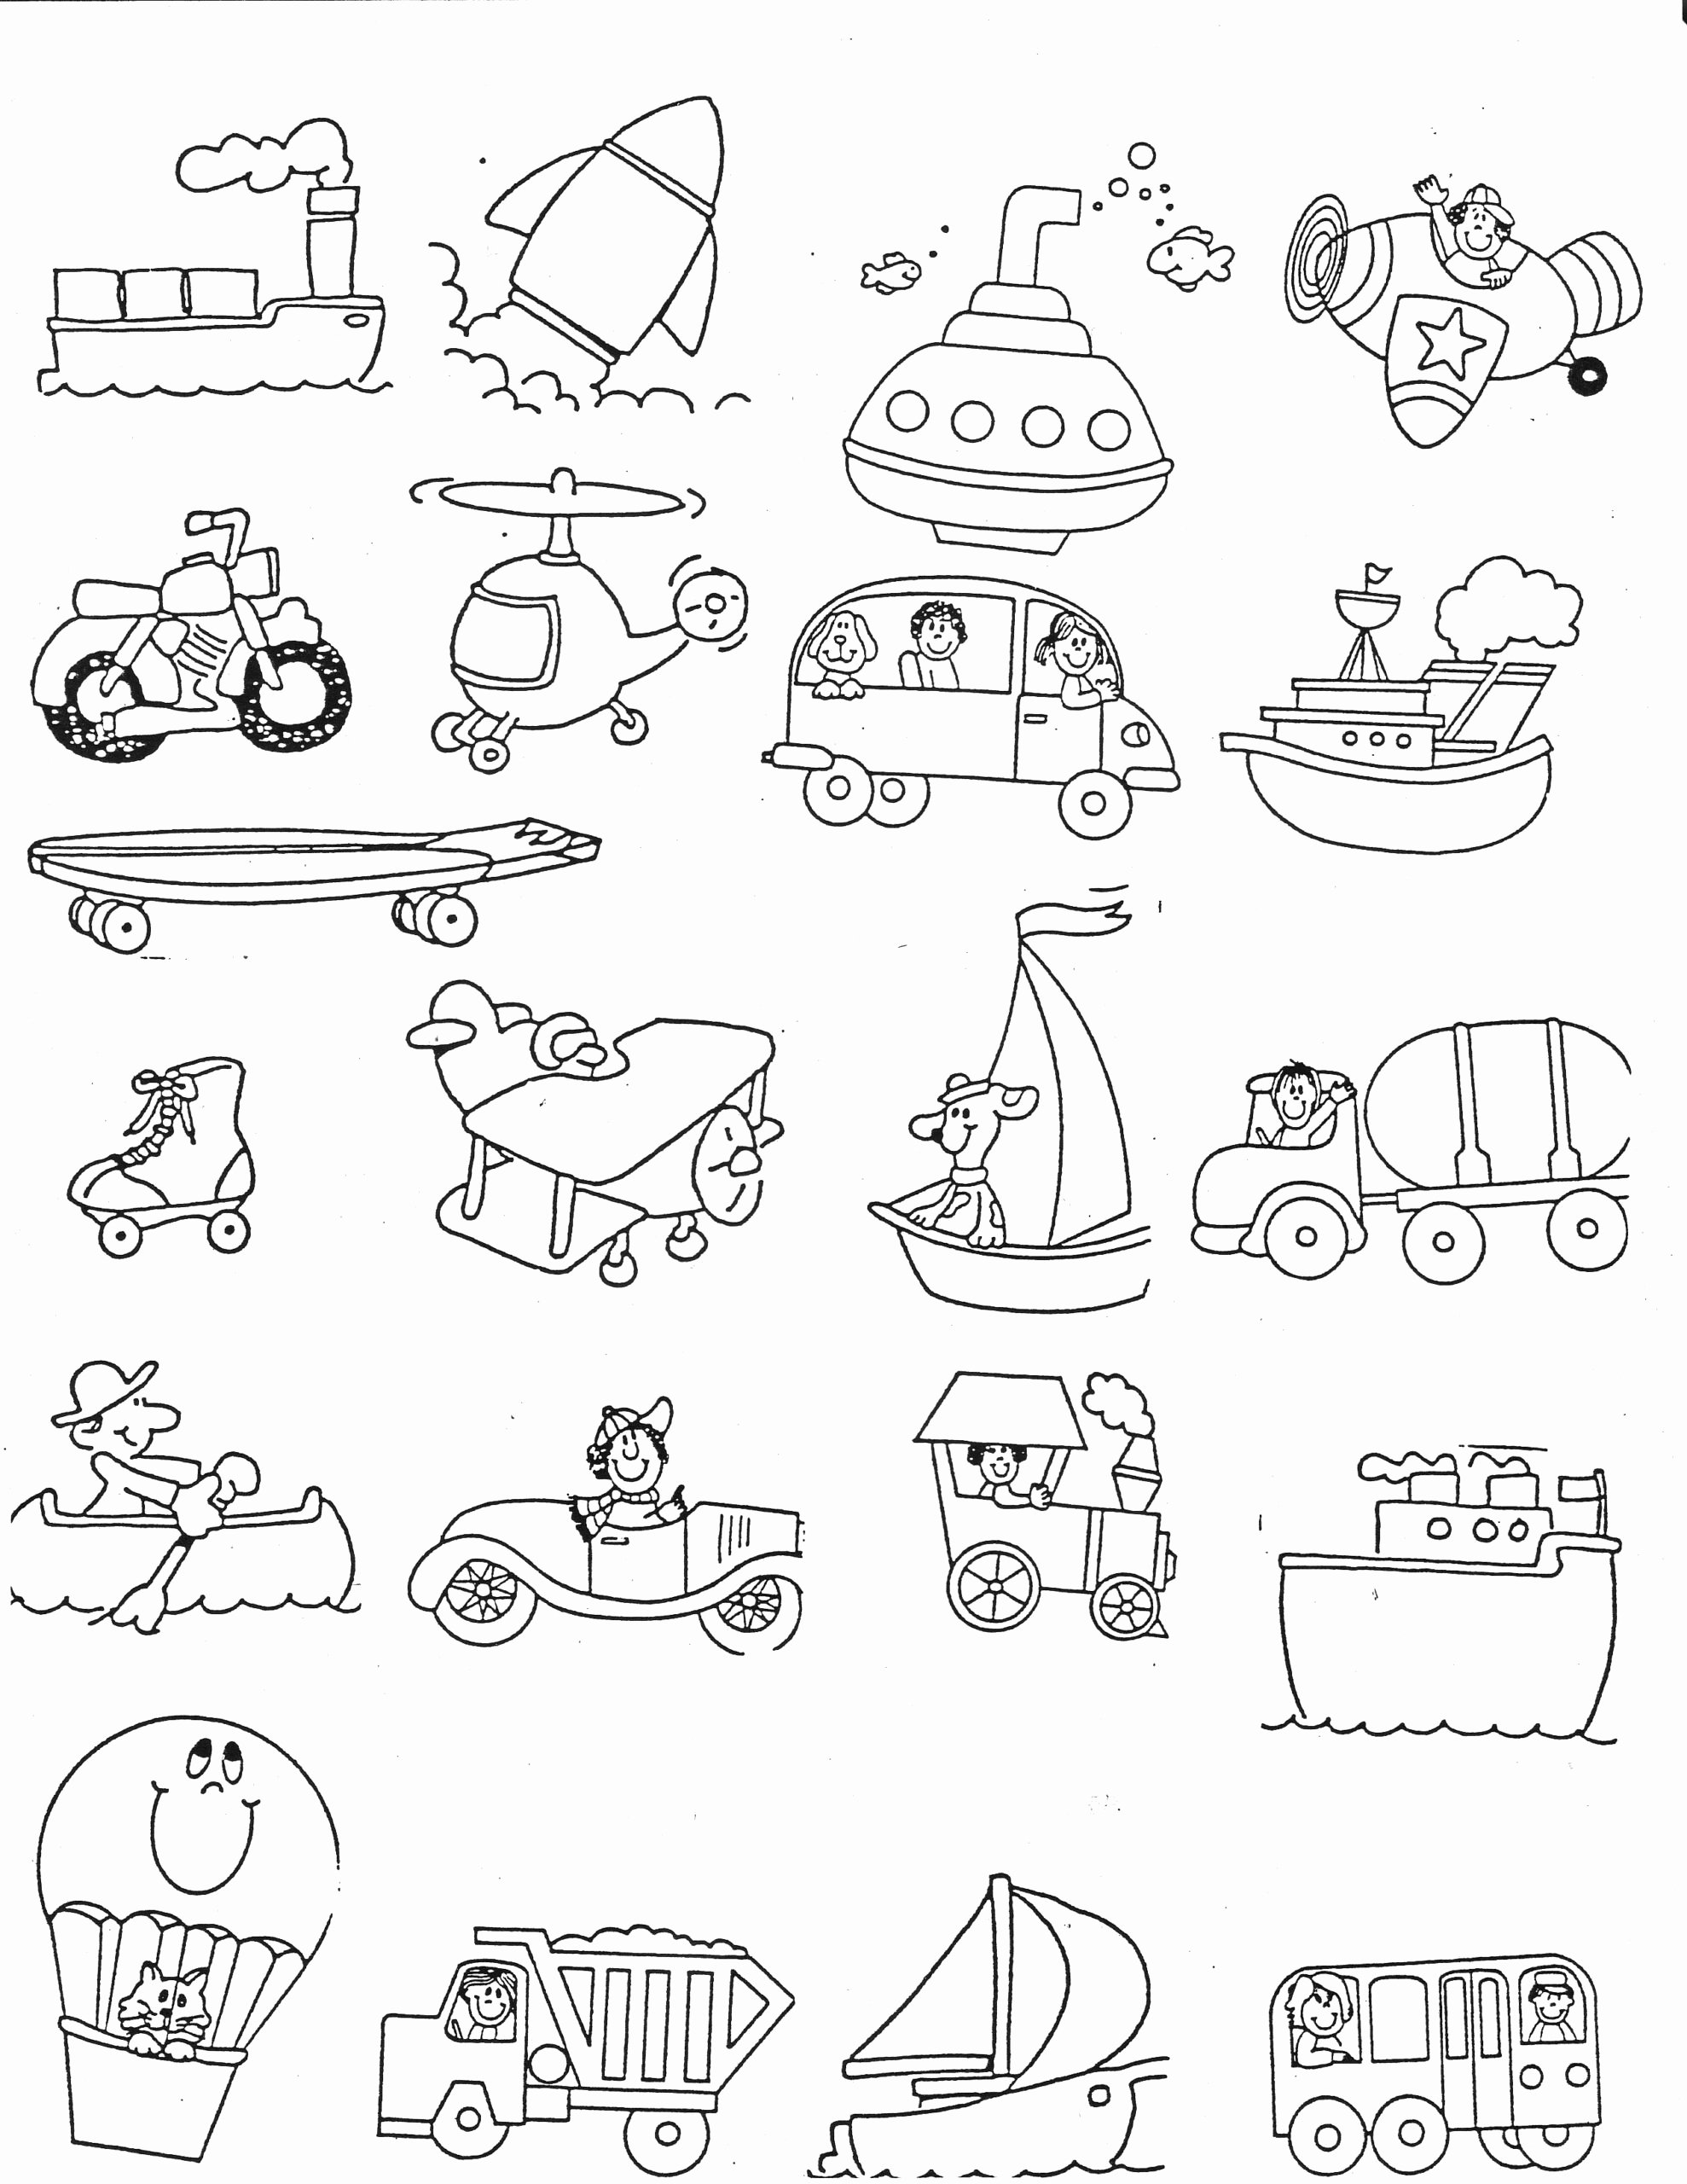 Transport Worksheets for Preschoolers Best Of Worksheets Transportation Kindergarten Nana Half Worksheet